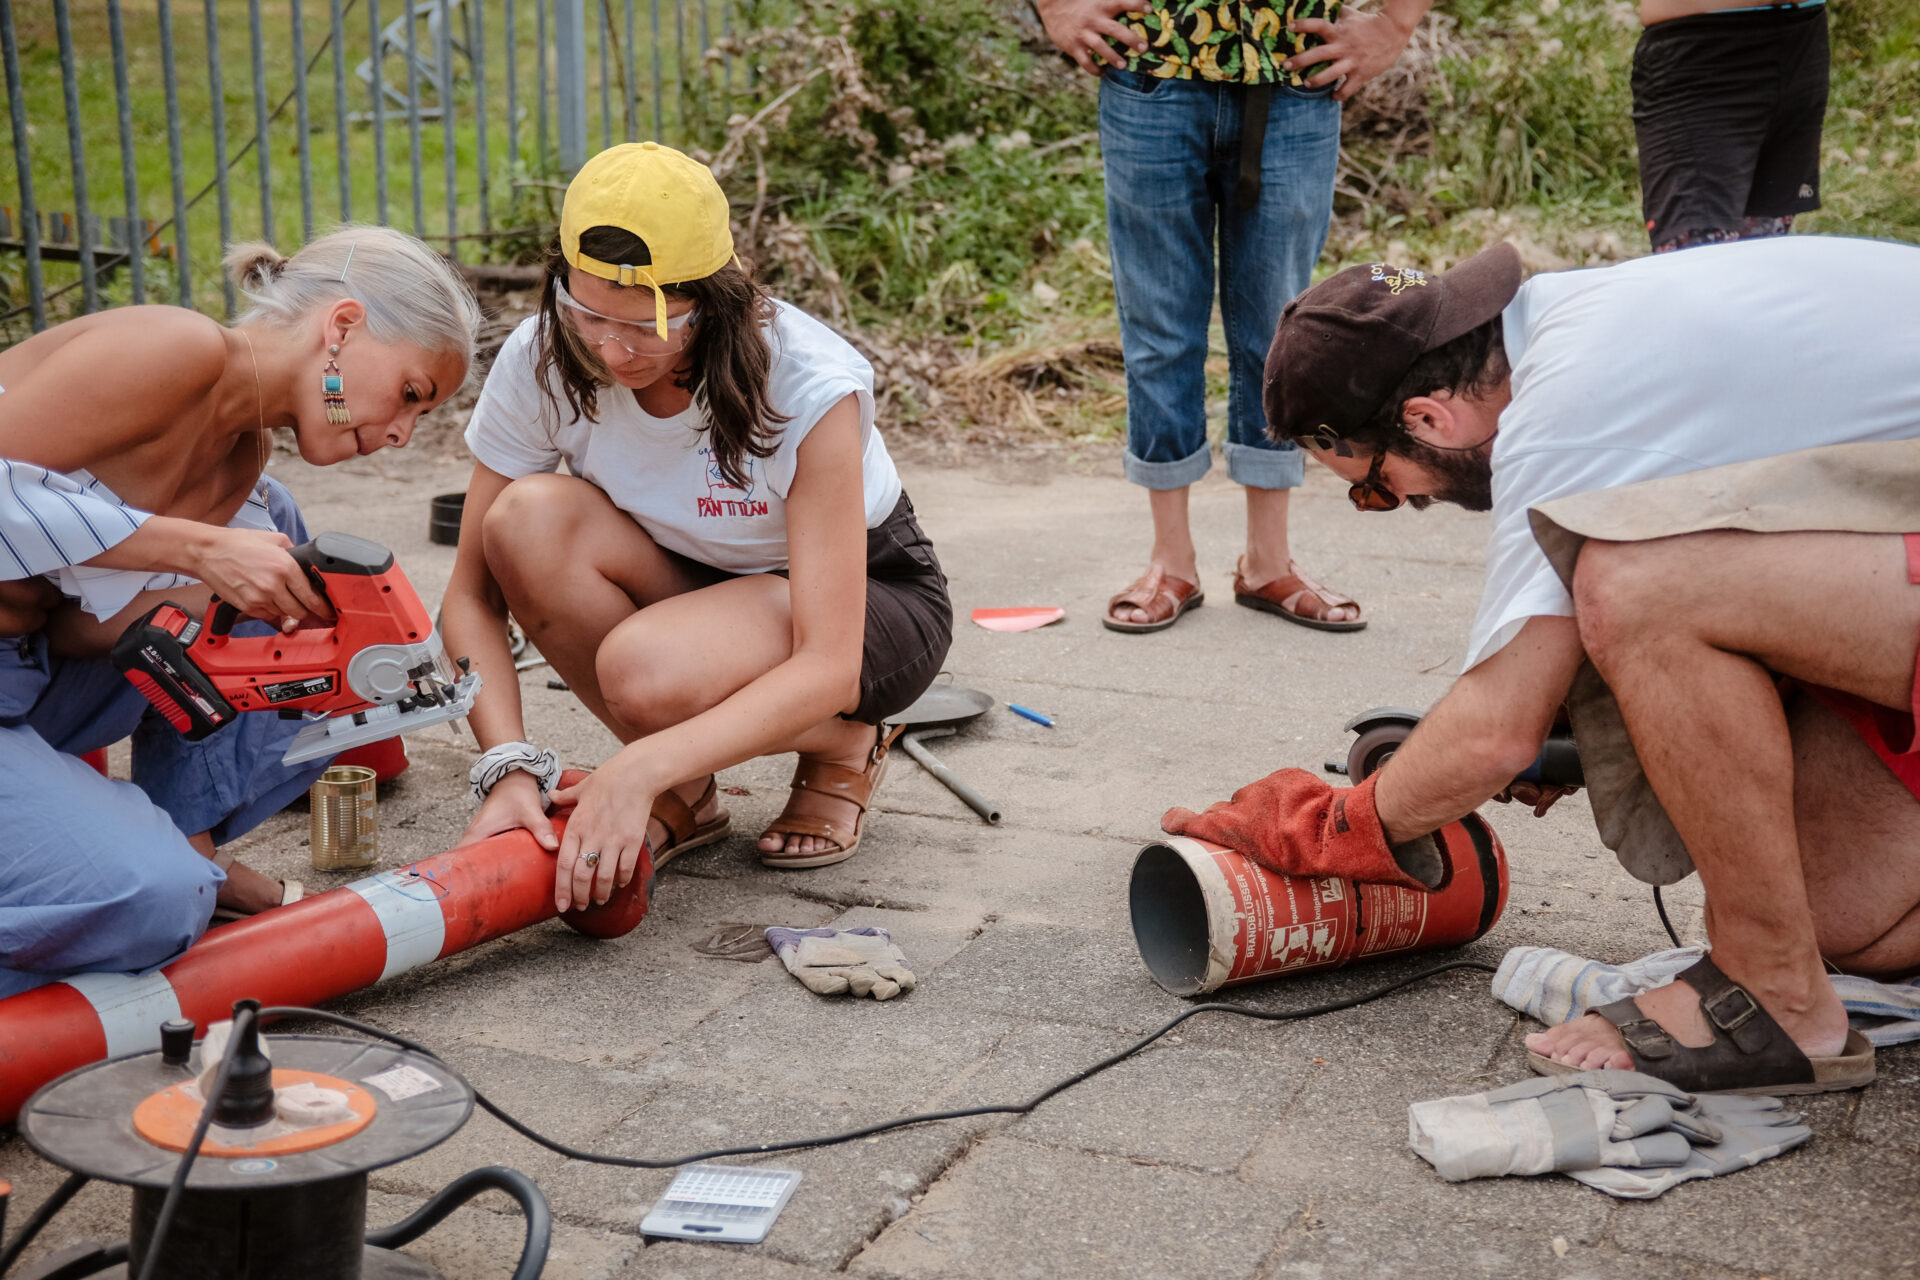 Workshop: Construction of a rocket stove with materials found locally